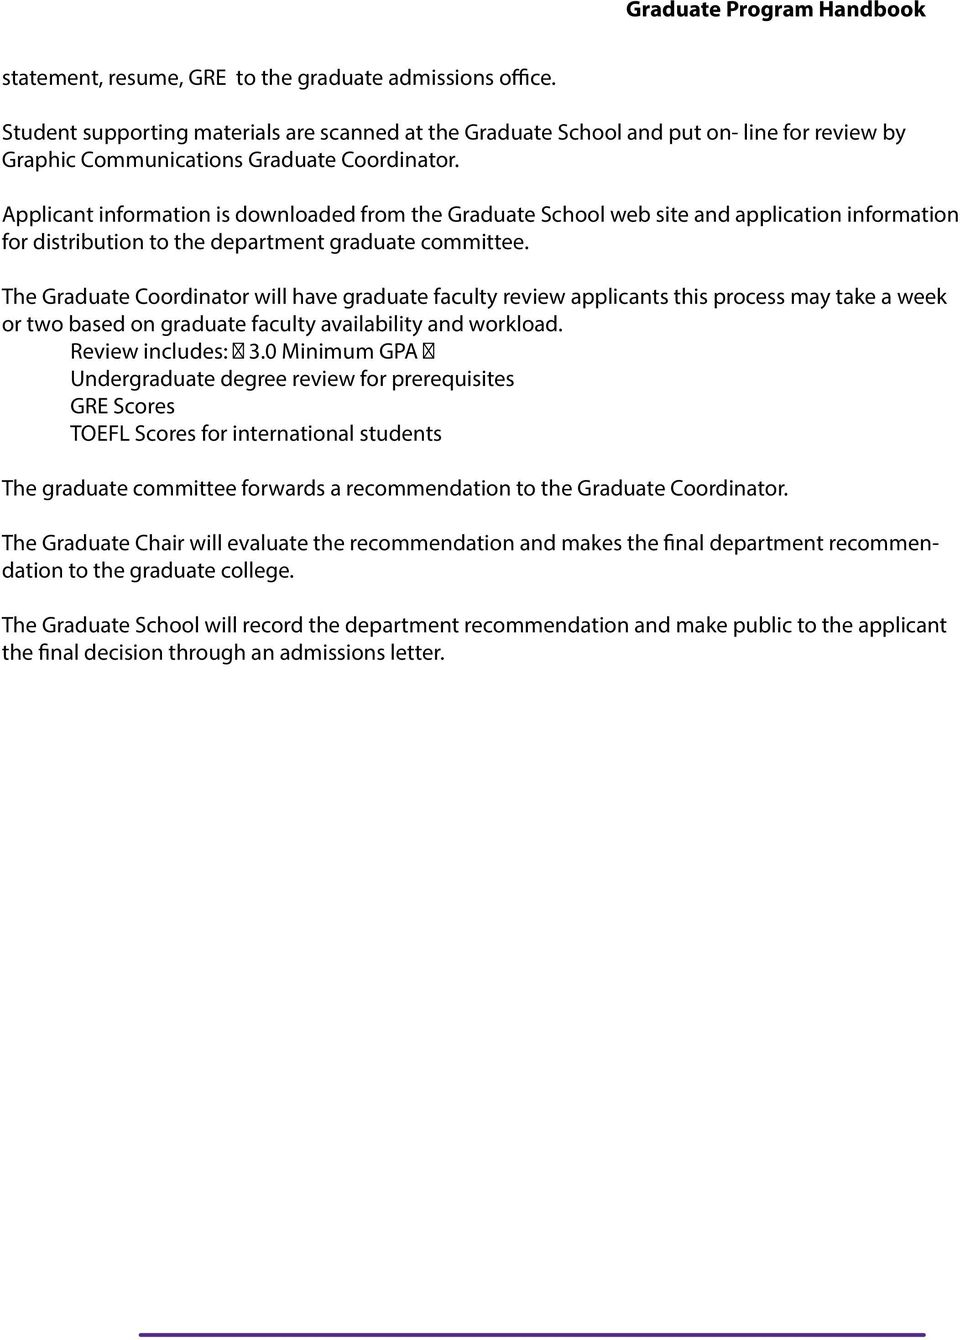 The Graduate Coordinator will have graduate faculty review applicants this process may take a week or two based on graduate faculty availability and workload. Review includes: 3.